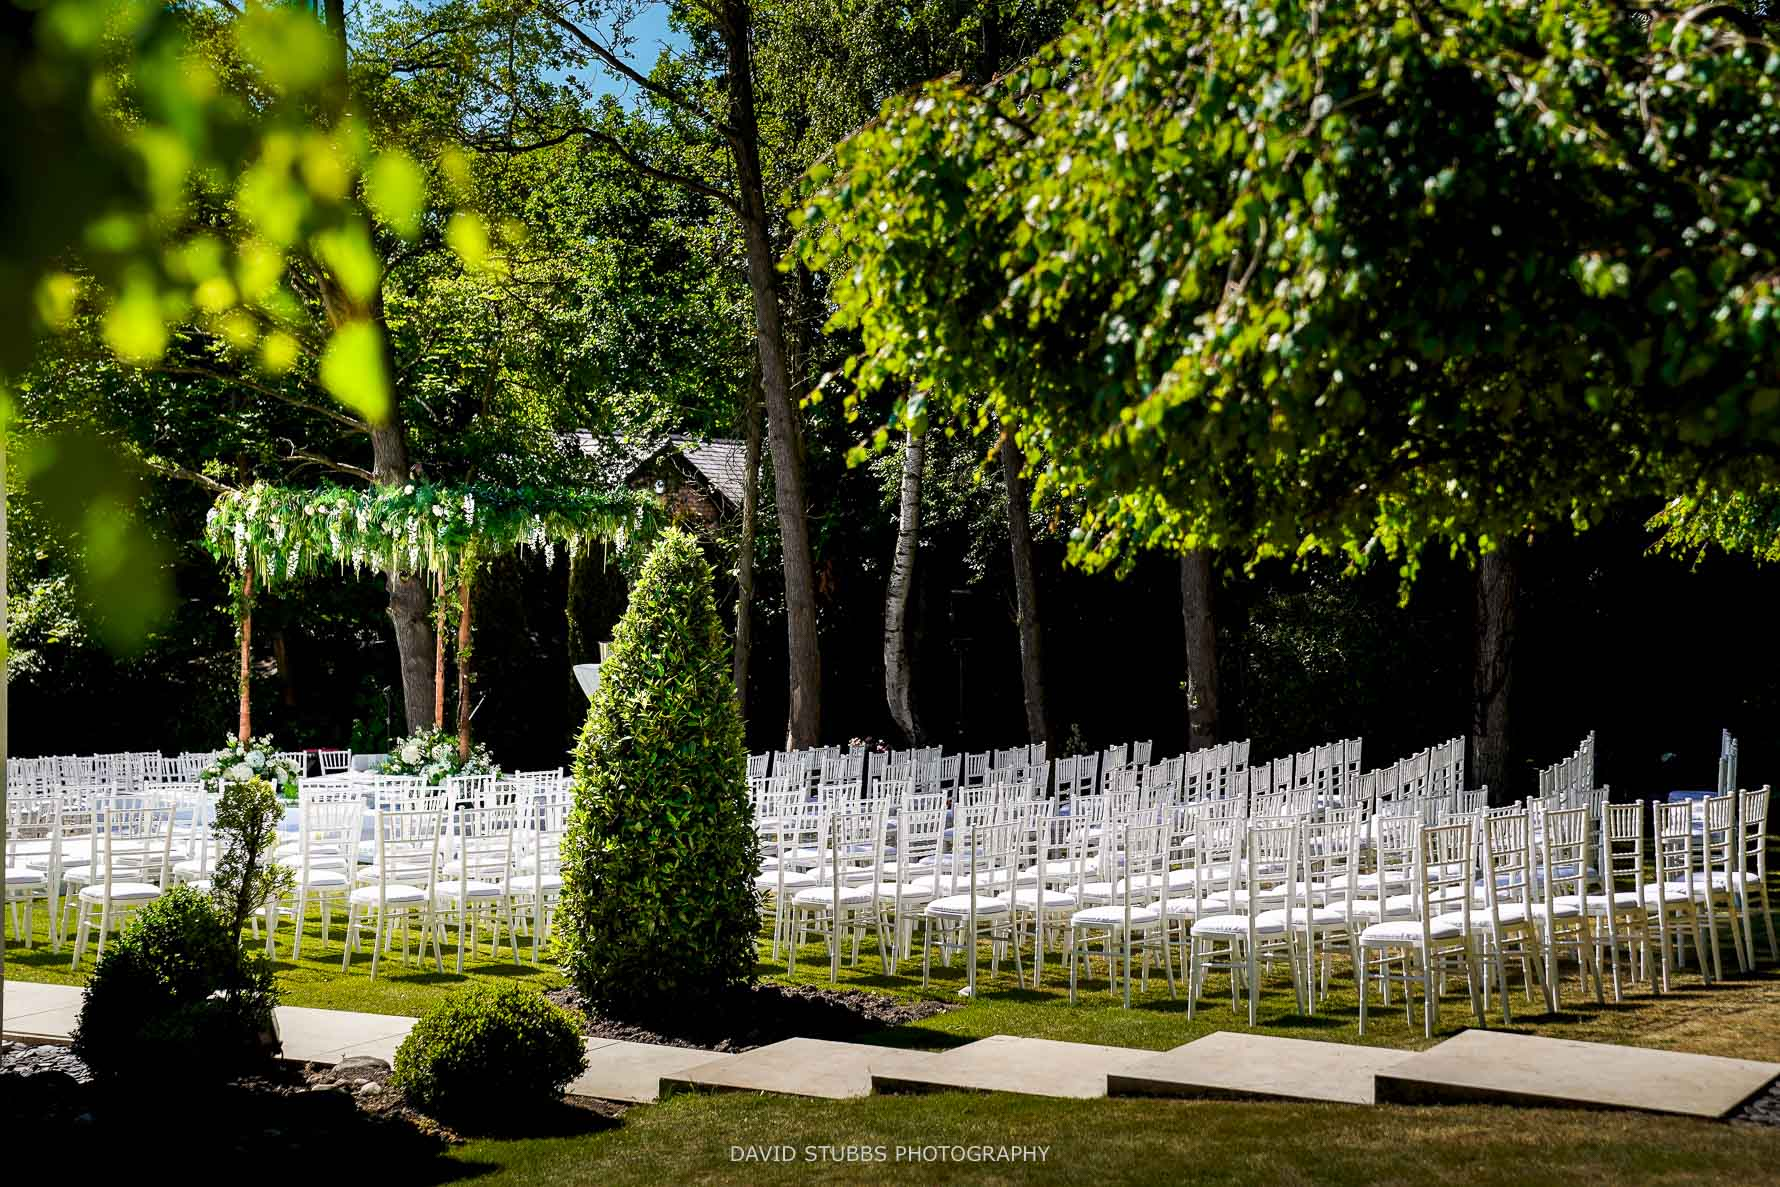 the chuppah location at the venue